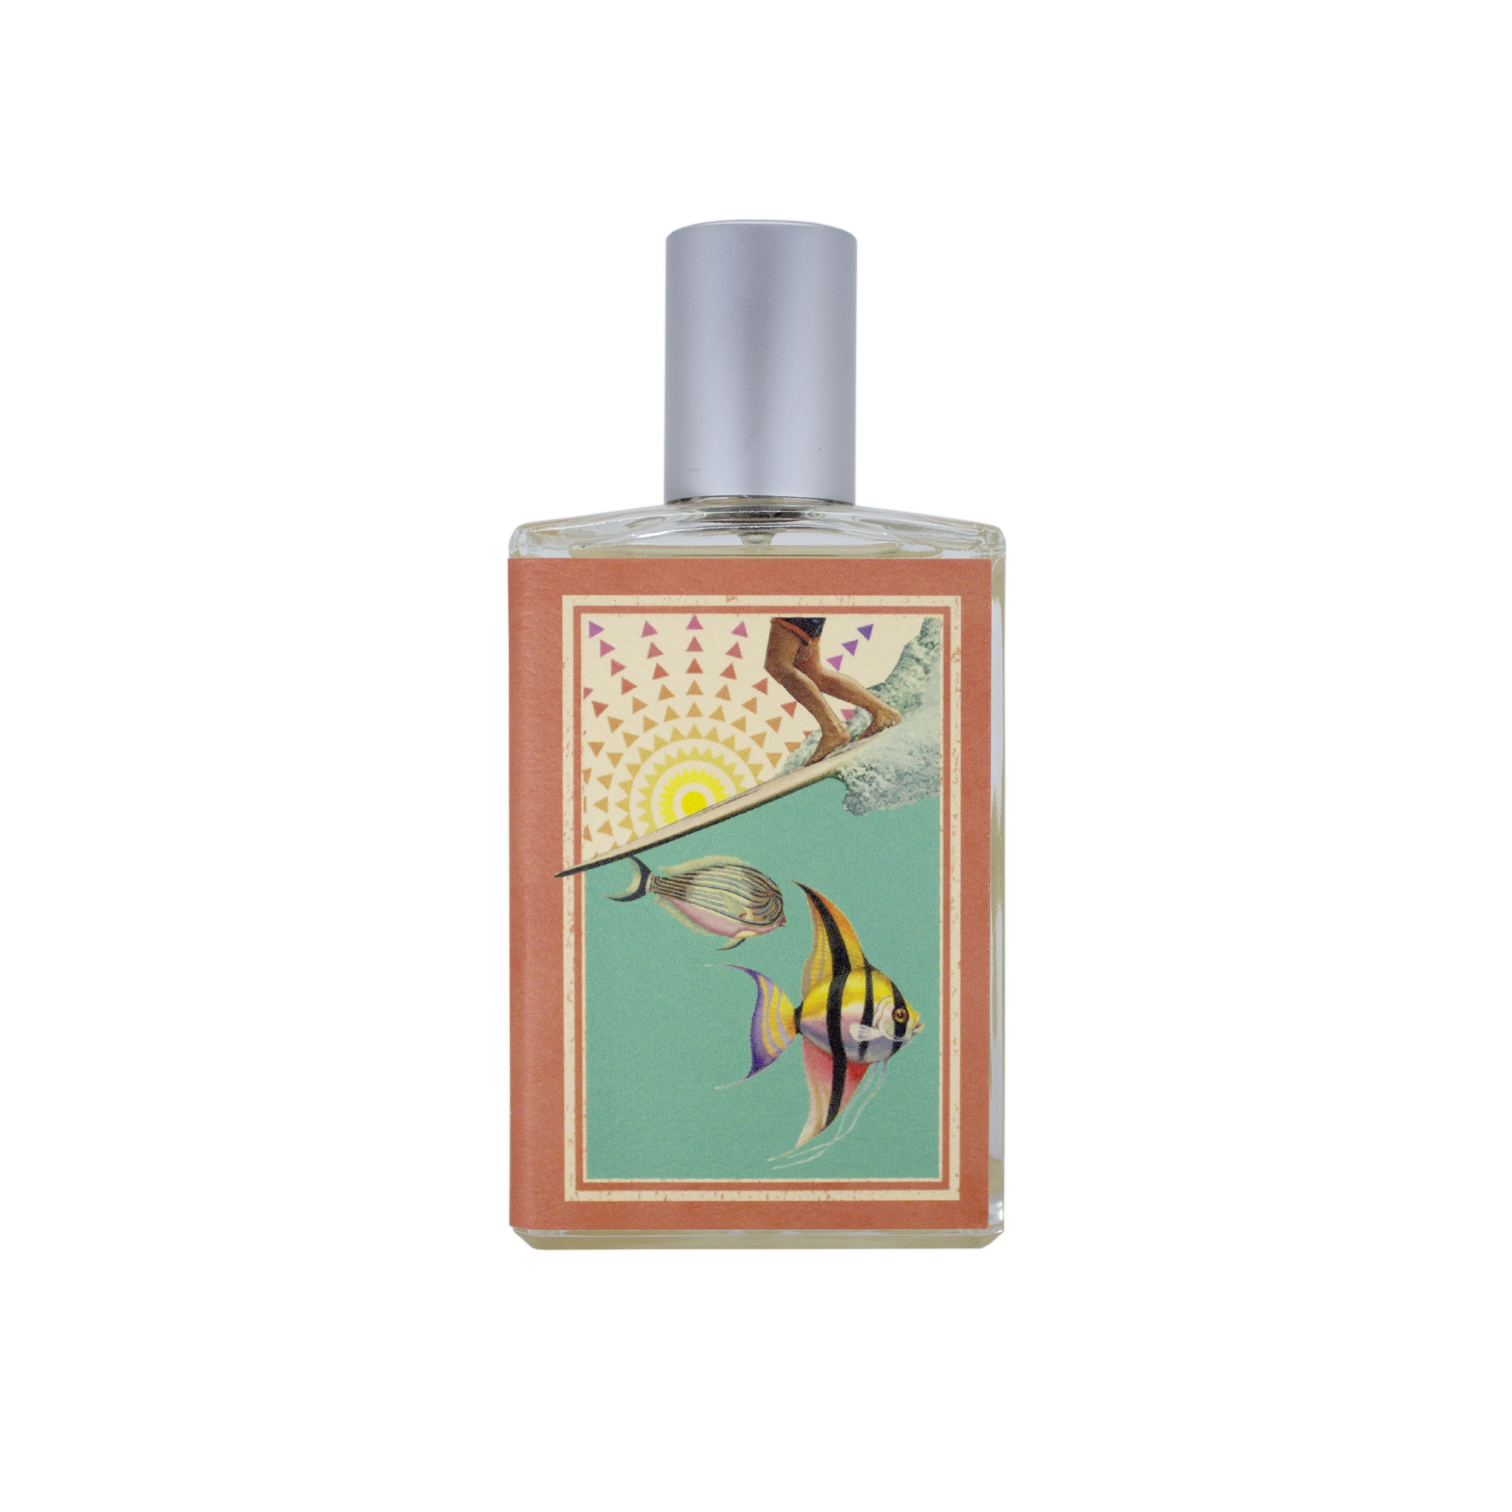 Imaginary Authors - Sundrunk - Eau de Parfum image